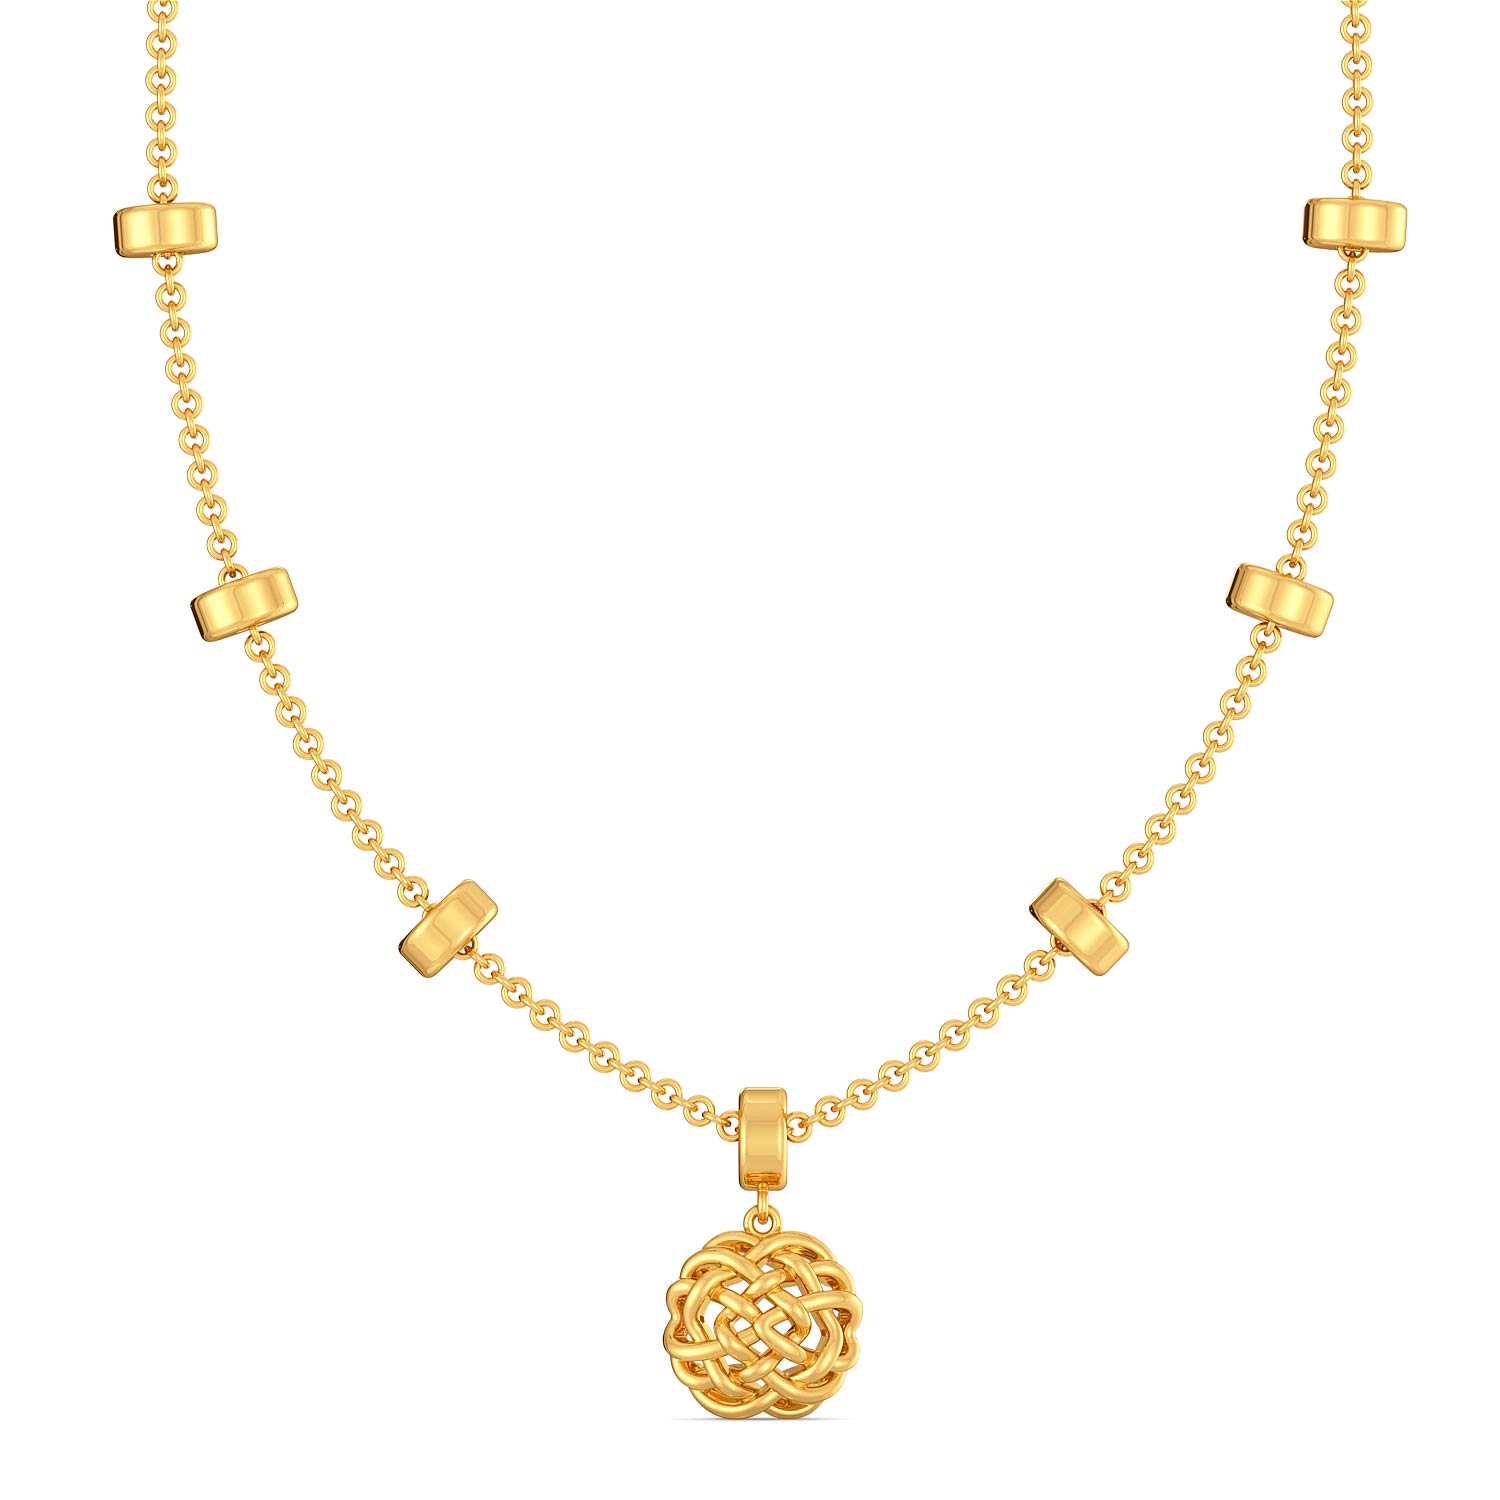 The Bullion Knot Gold Necklaces